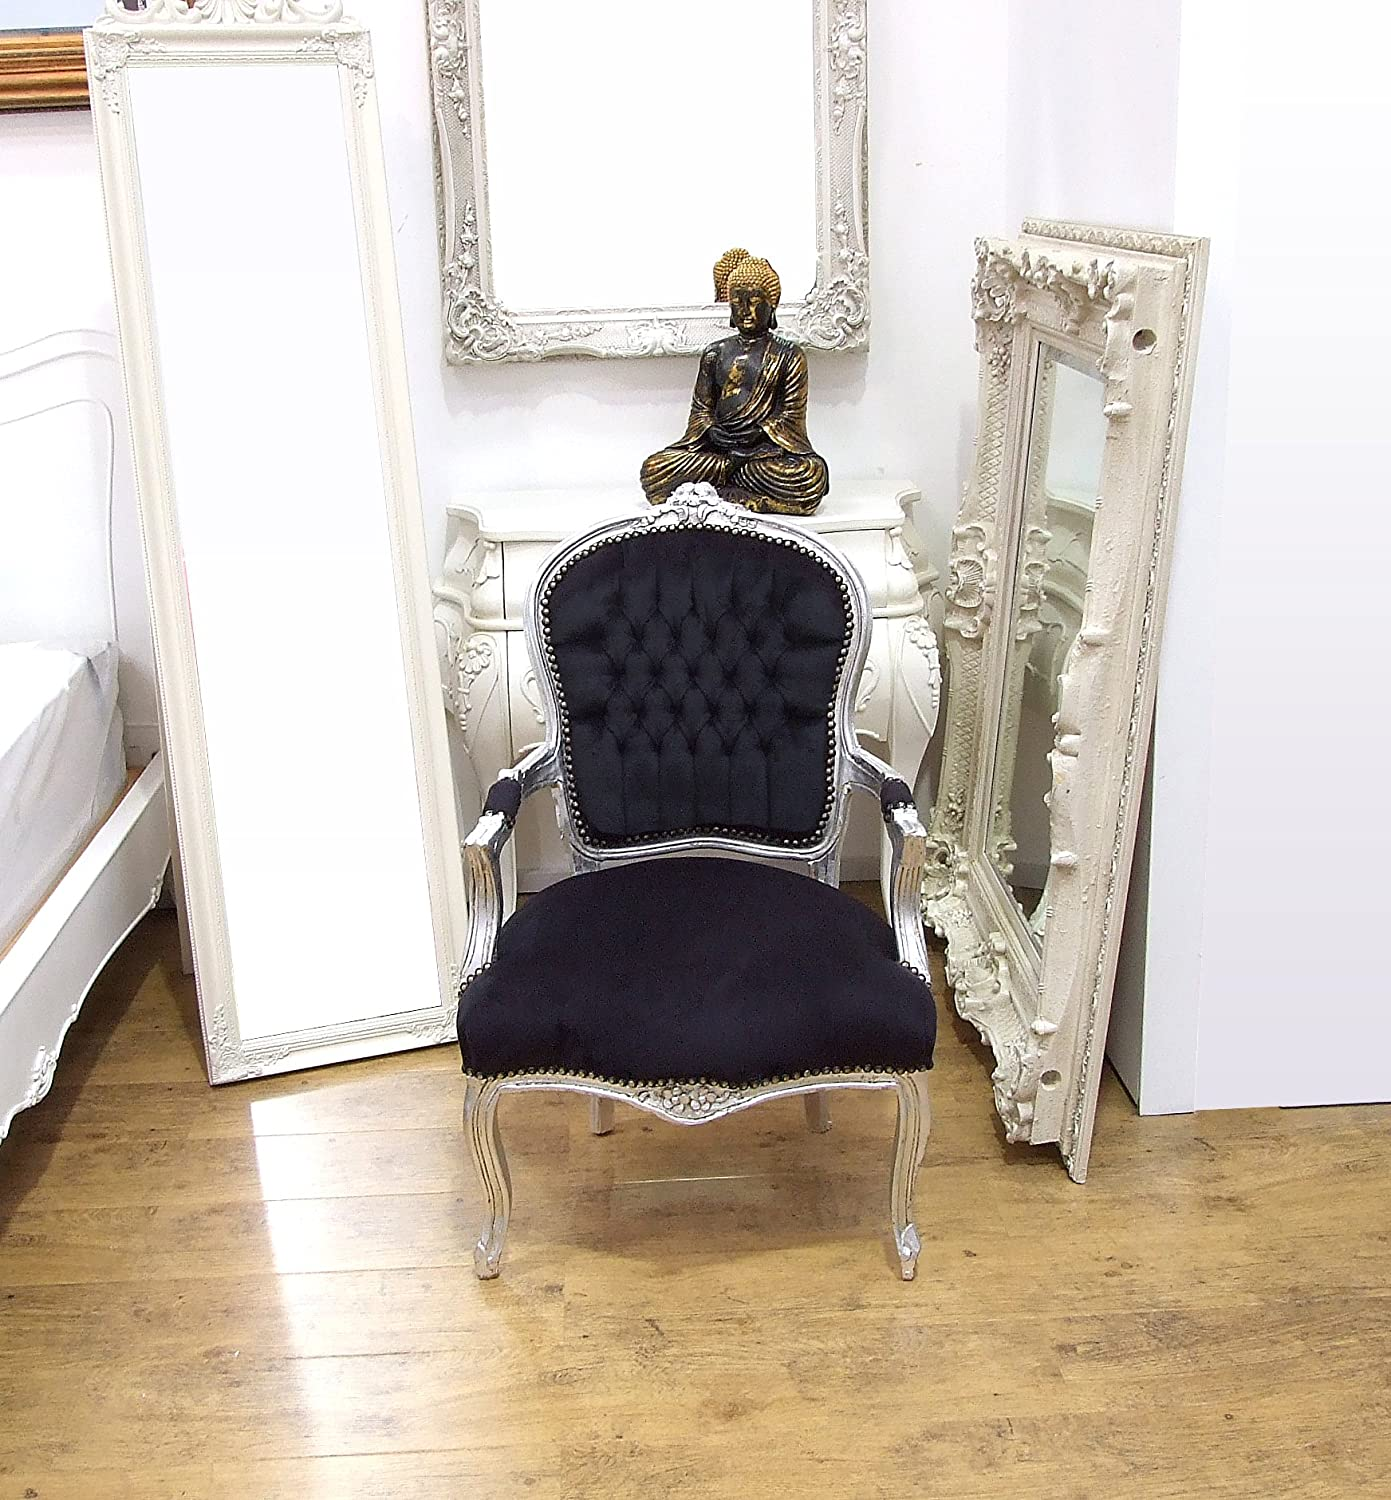 Vintage Retro Shabby Chic French Louis XV Style Chair With Black Fabric  Upholstery And Silver Carved Wood Frame: Amazon.co.uk: Kitchen U0026 Home